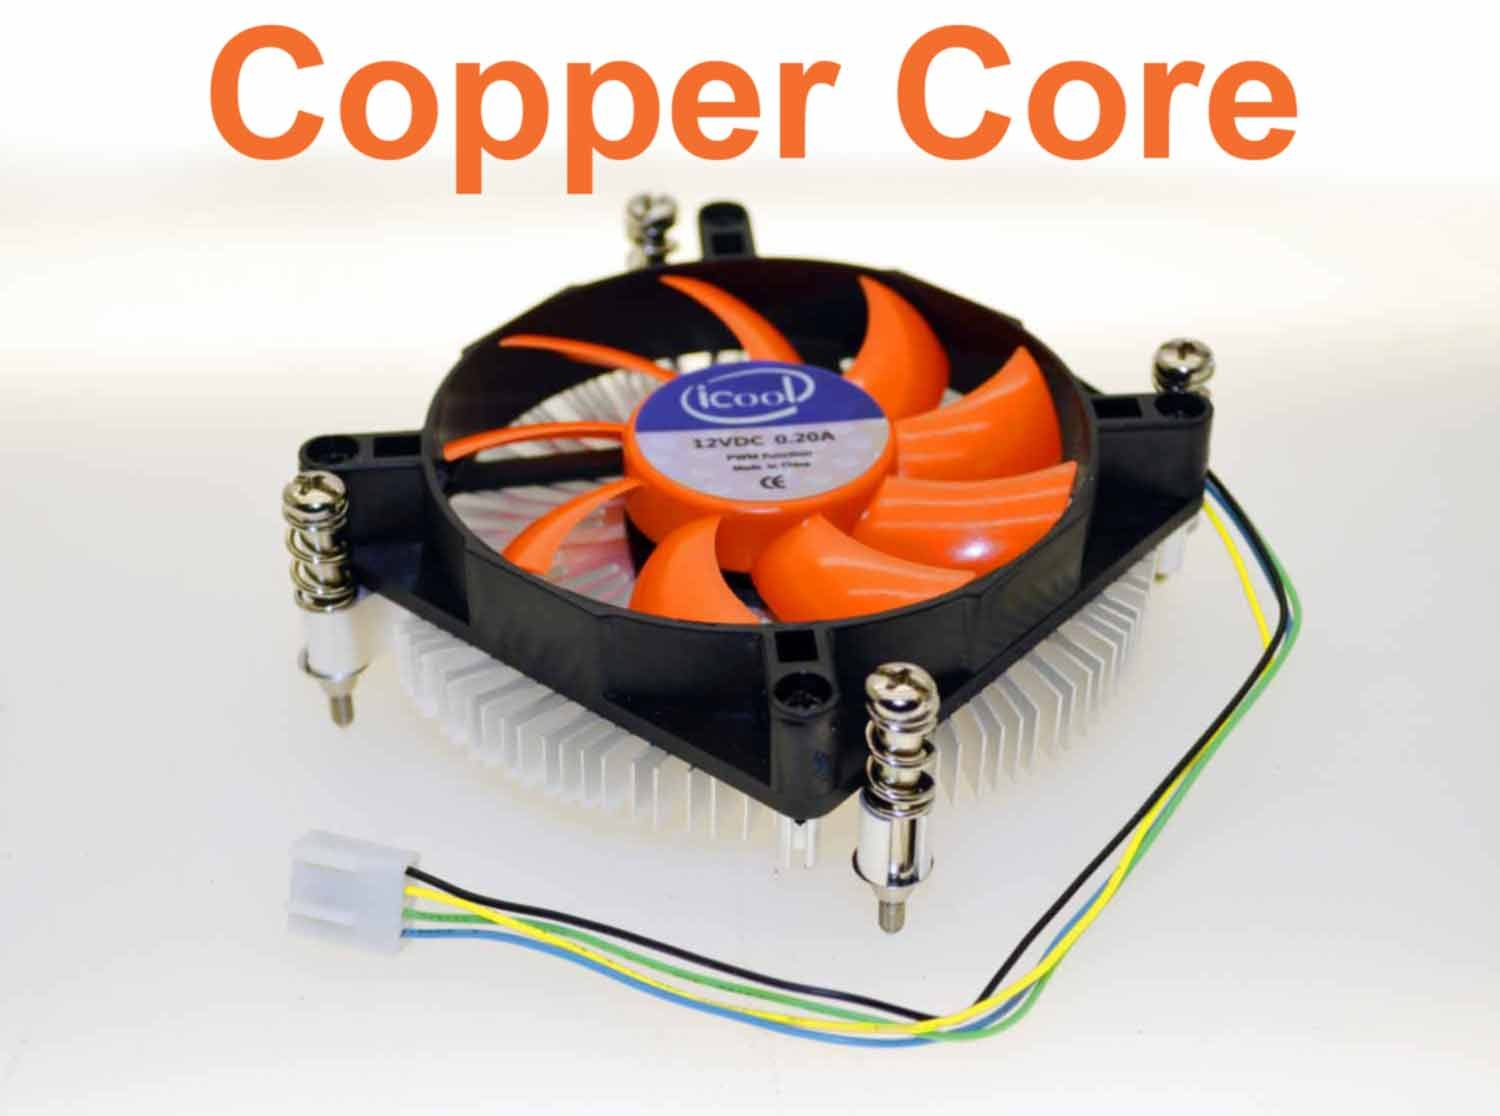 Willhom Laptop CPU Cooling Cooler Fan Left Right Replacement for MacBook Pro 17 A1297 2009 2010 2011 MB604 MC226 MC024 MC725 MD311